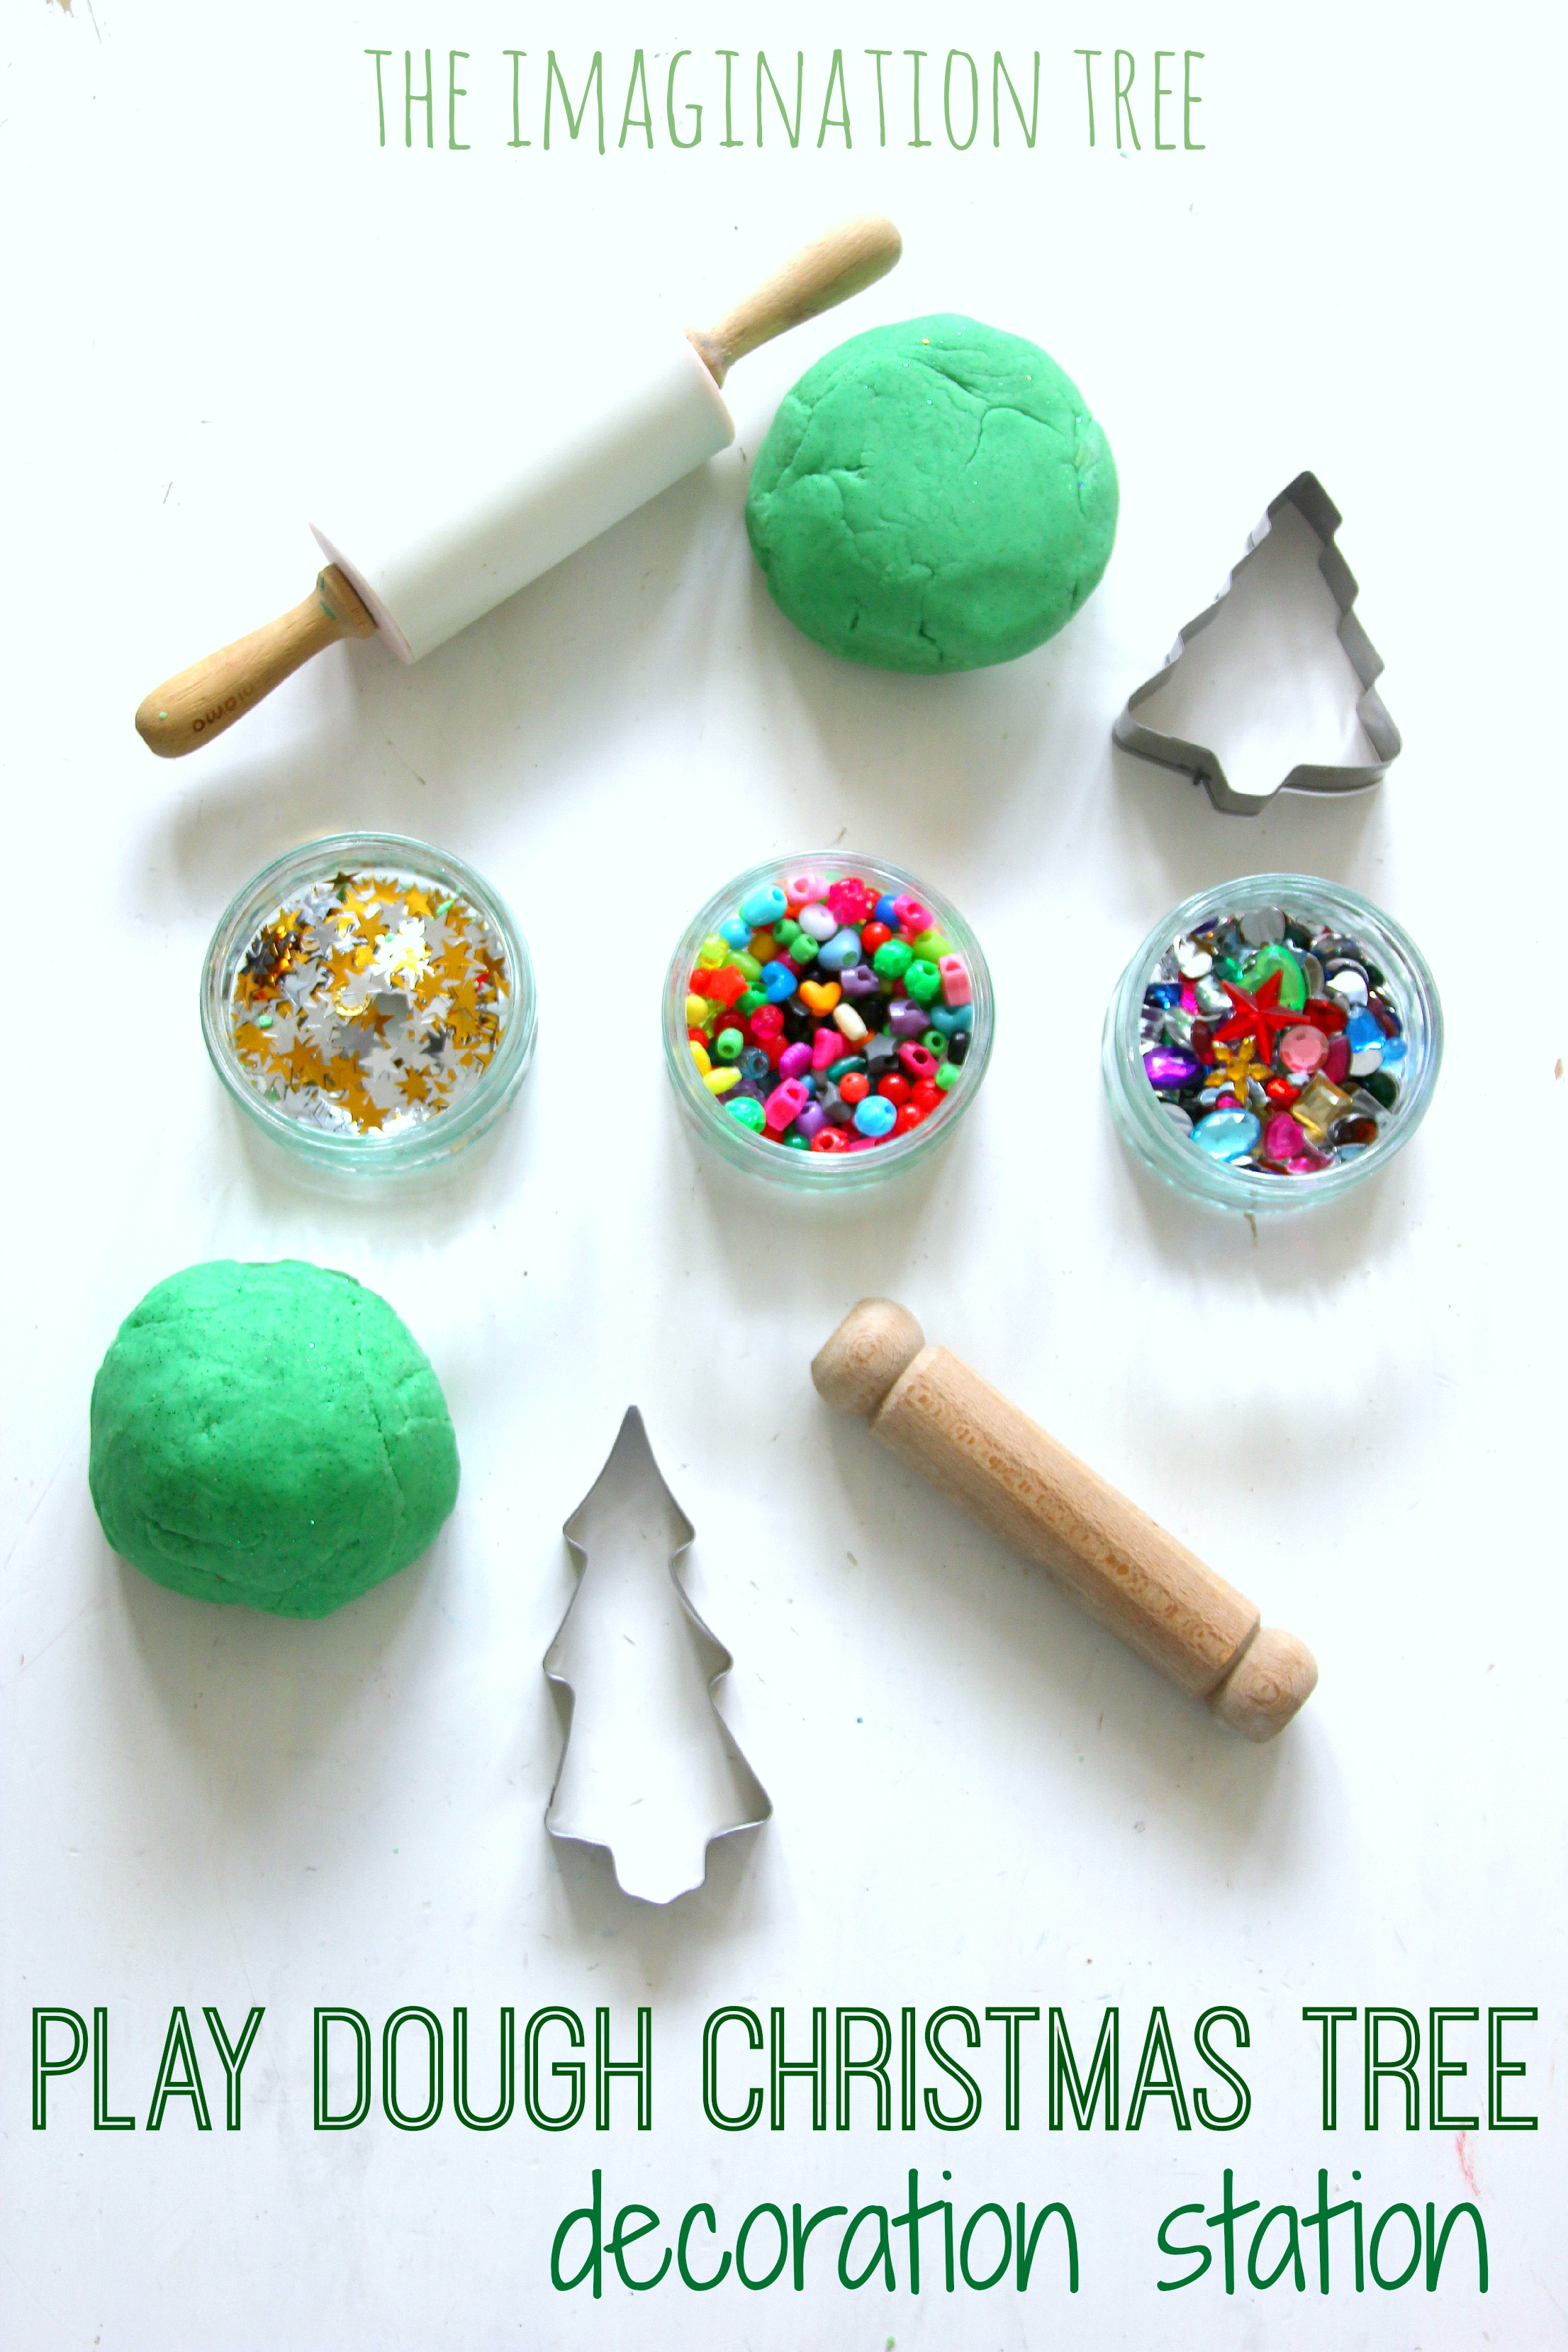 Invitation to Decorate Play Dough Christmas Trees - The Imagination Tree